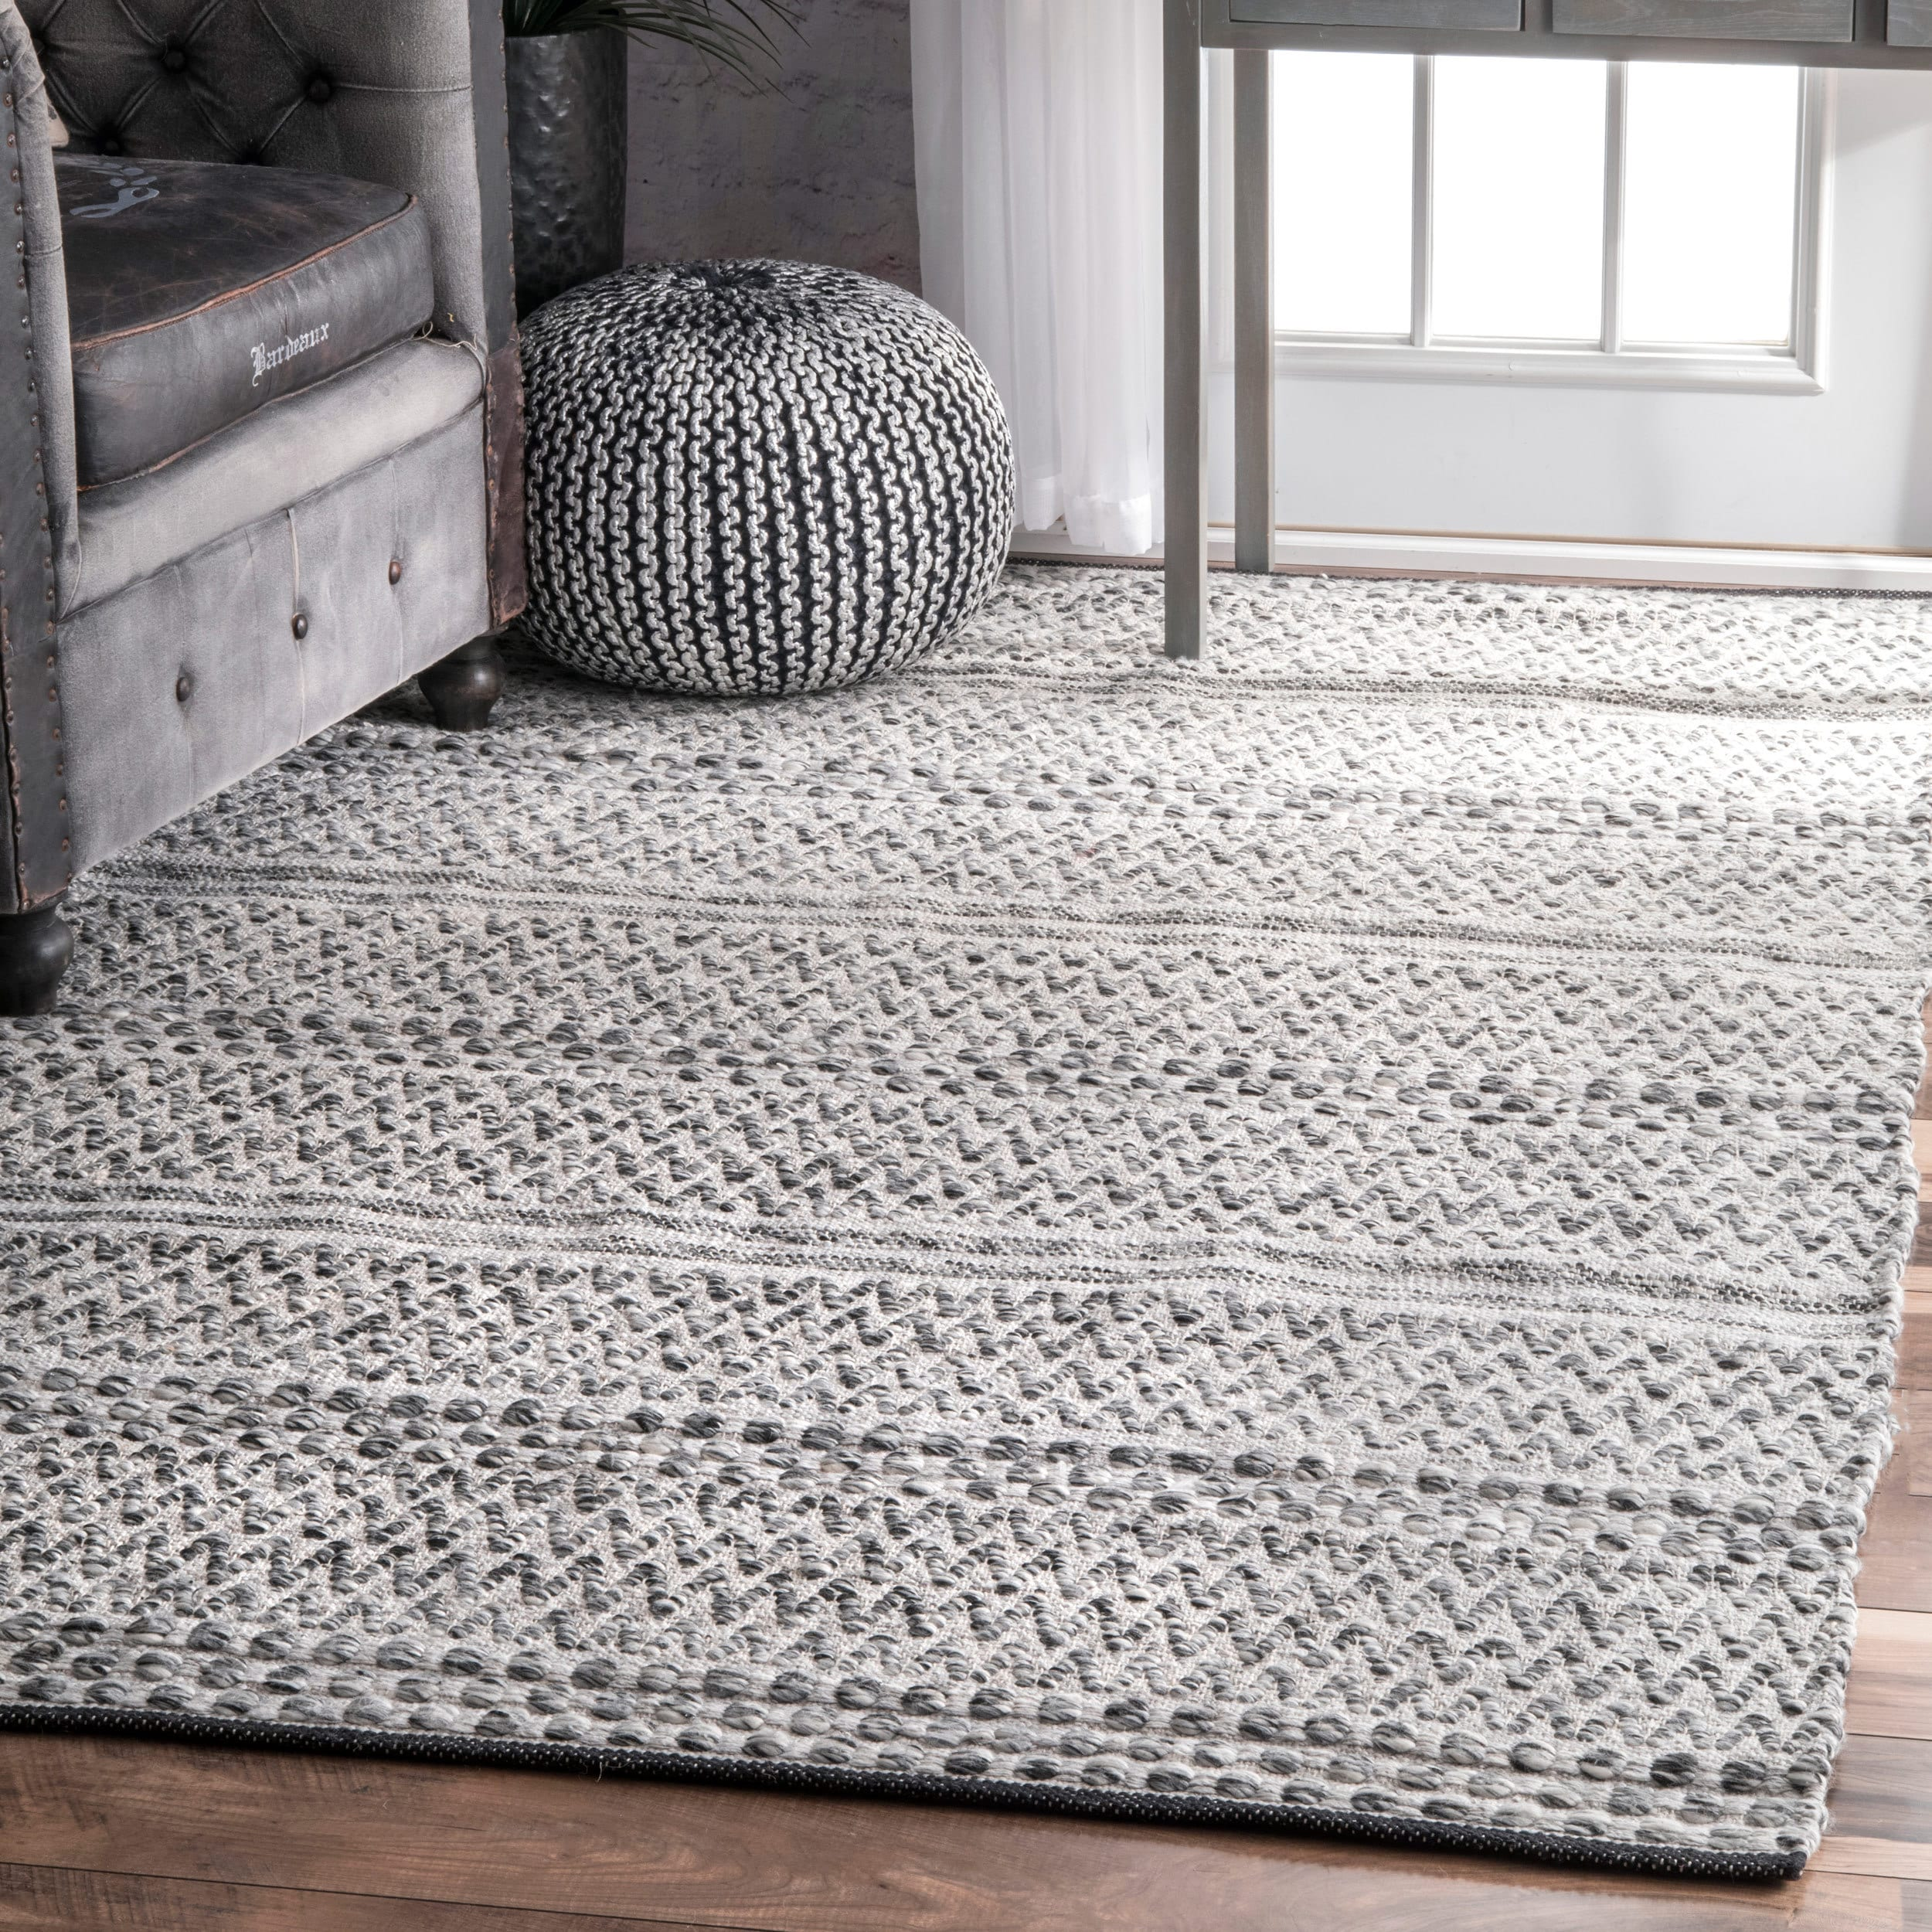 Nuloom Flatweave Chevron Striped Indoor Outdoor Patio Silver Rug 7 6 X 9 Free Shipping Today 20984670